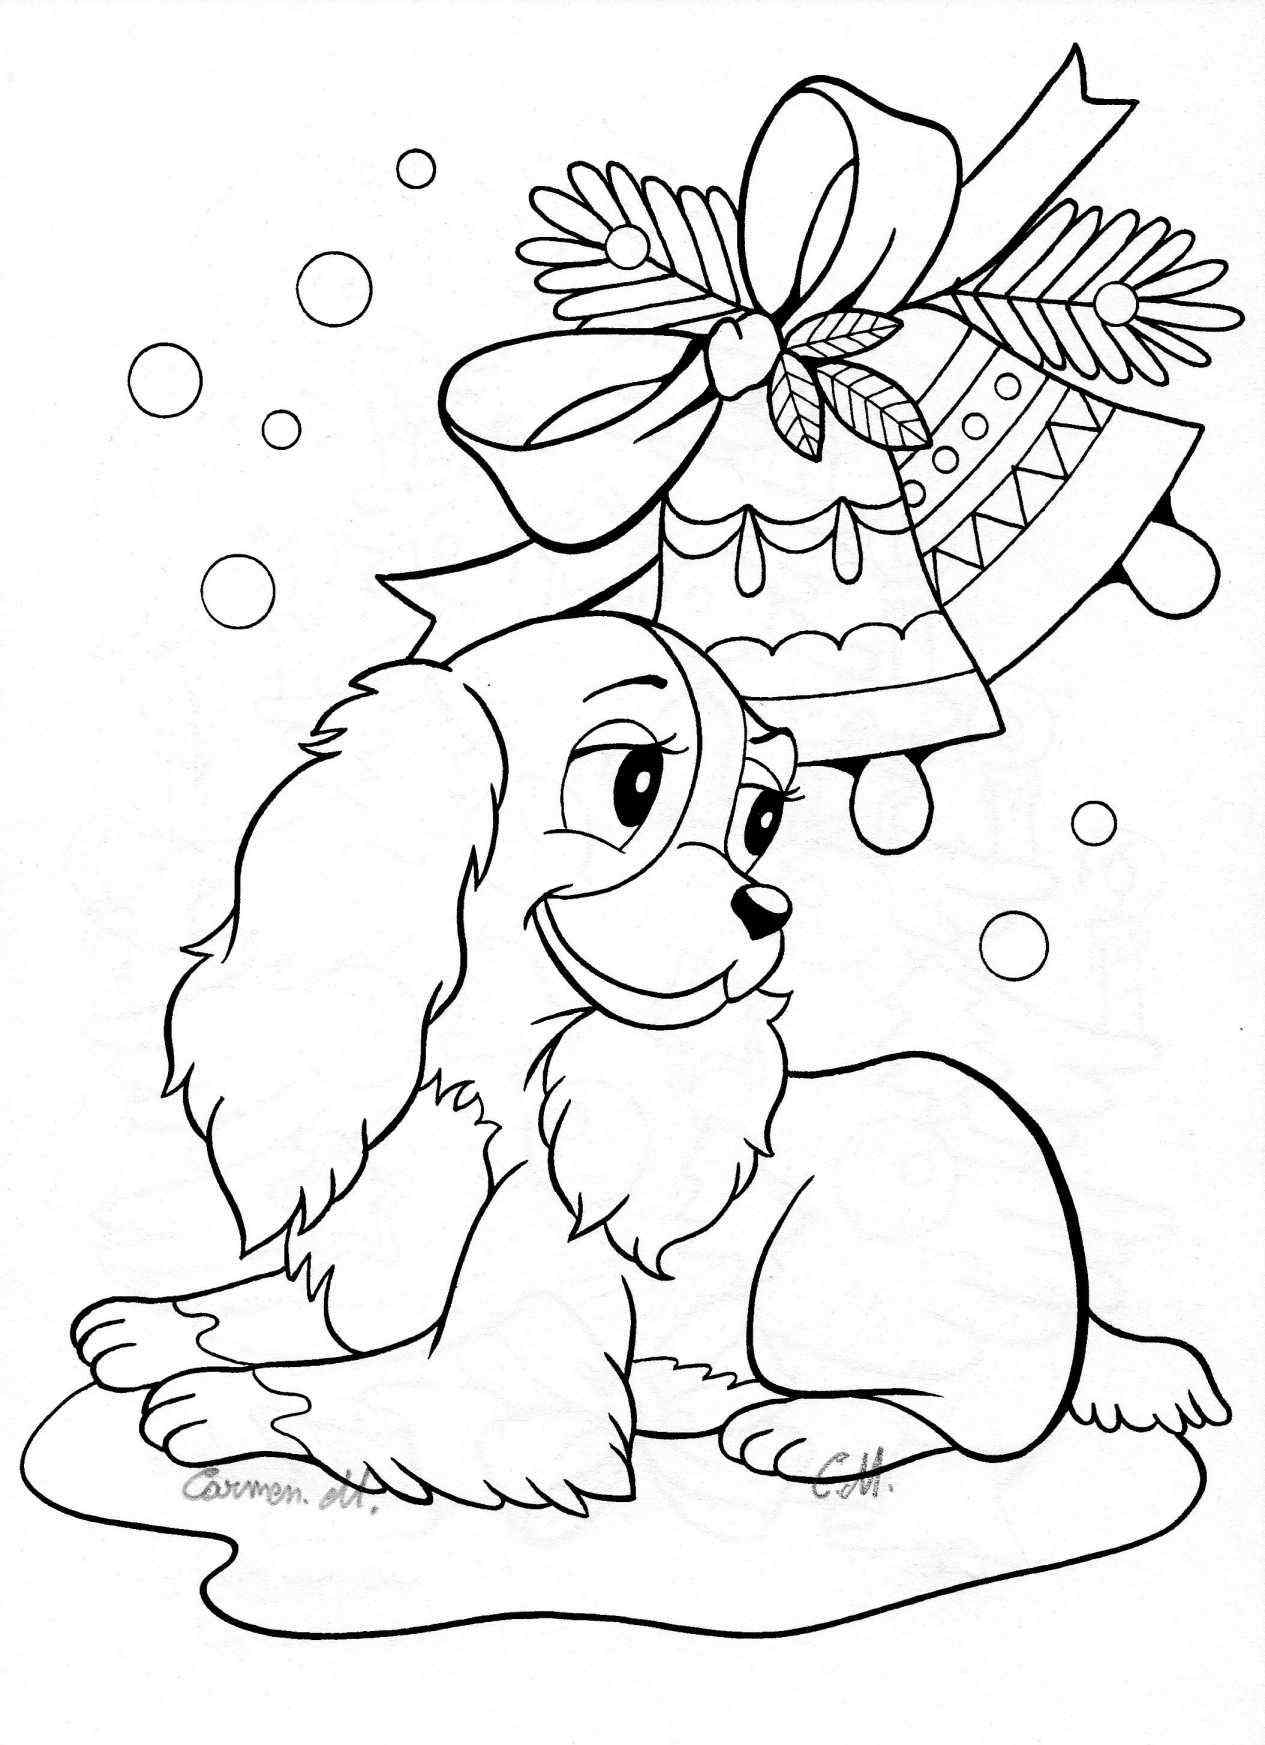 Christmas Coloring Pages Australia With Merry Top Border Luxury Free Colouring